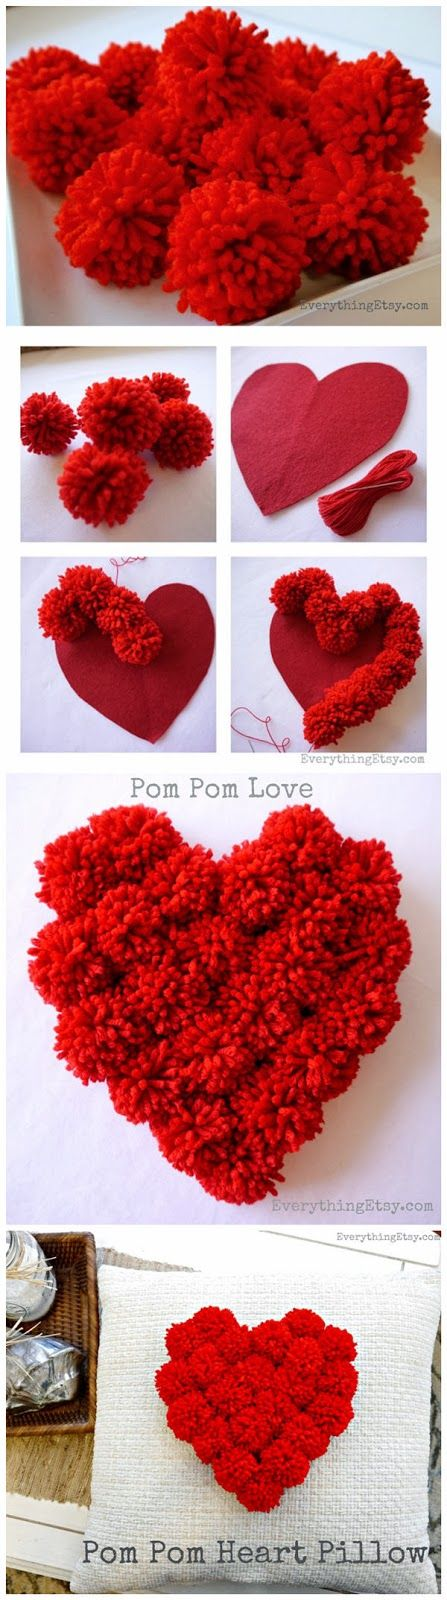 Pom Pom Heart Pillow Love Diy Decor Pom Pom Rug